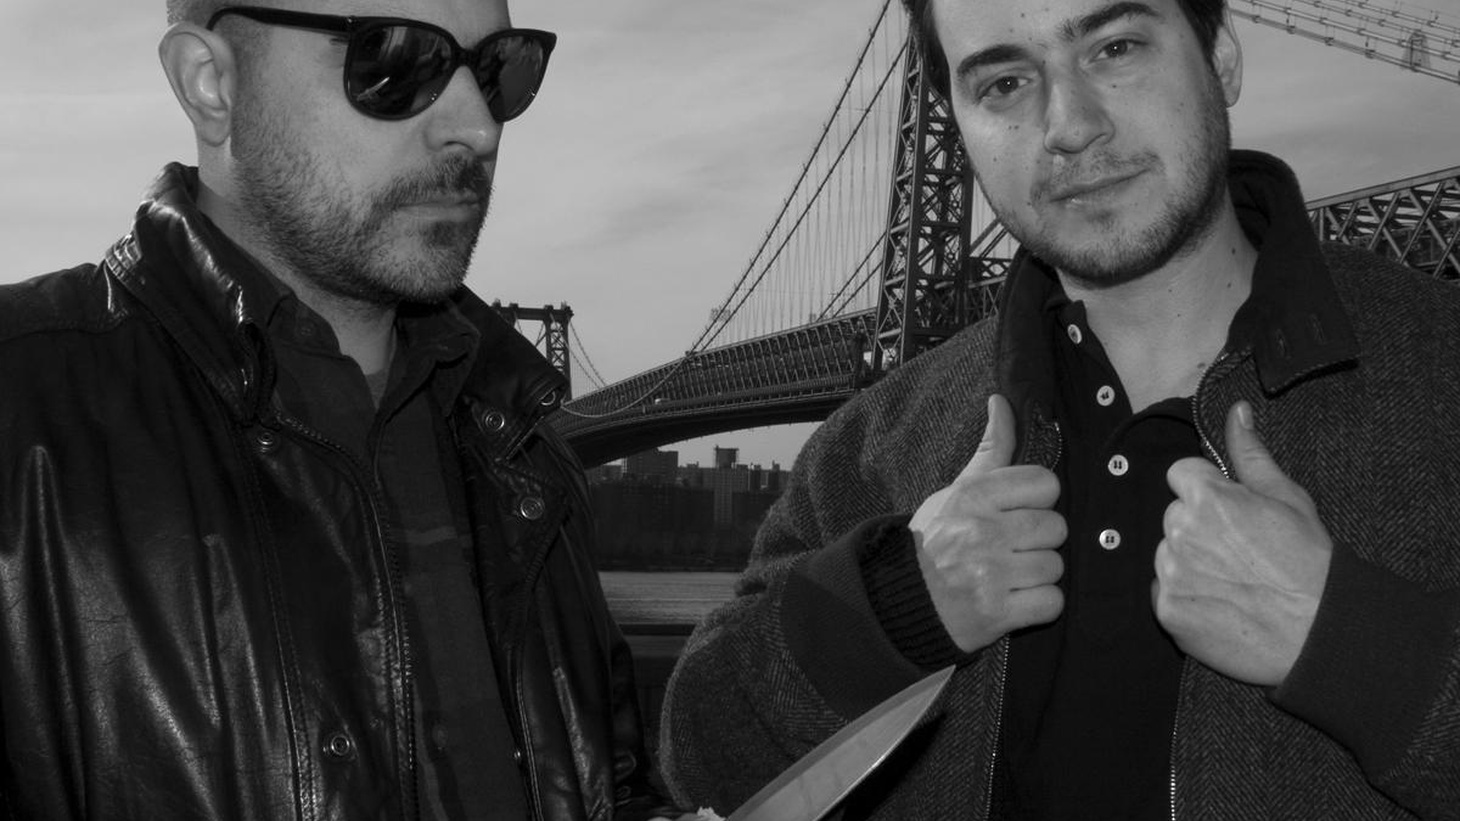 "Runaway is the collaboration between DJs Jacques Renault and Marcos Cabral, whose tribal disco house sound is so sincere, intense, and DIY that they've been a key ingredient in DFA's second wave. Their ""Brooklyn Club Jam"" single was widely-considered one of 2008's sickest bangers, 2009 found them remixing a slew of tracks, and 2010 will see the arrival of their debut album."